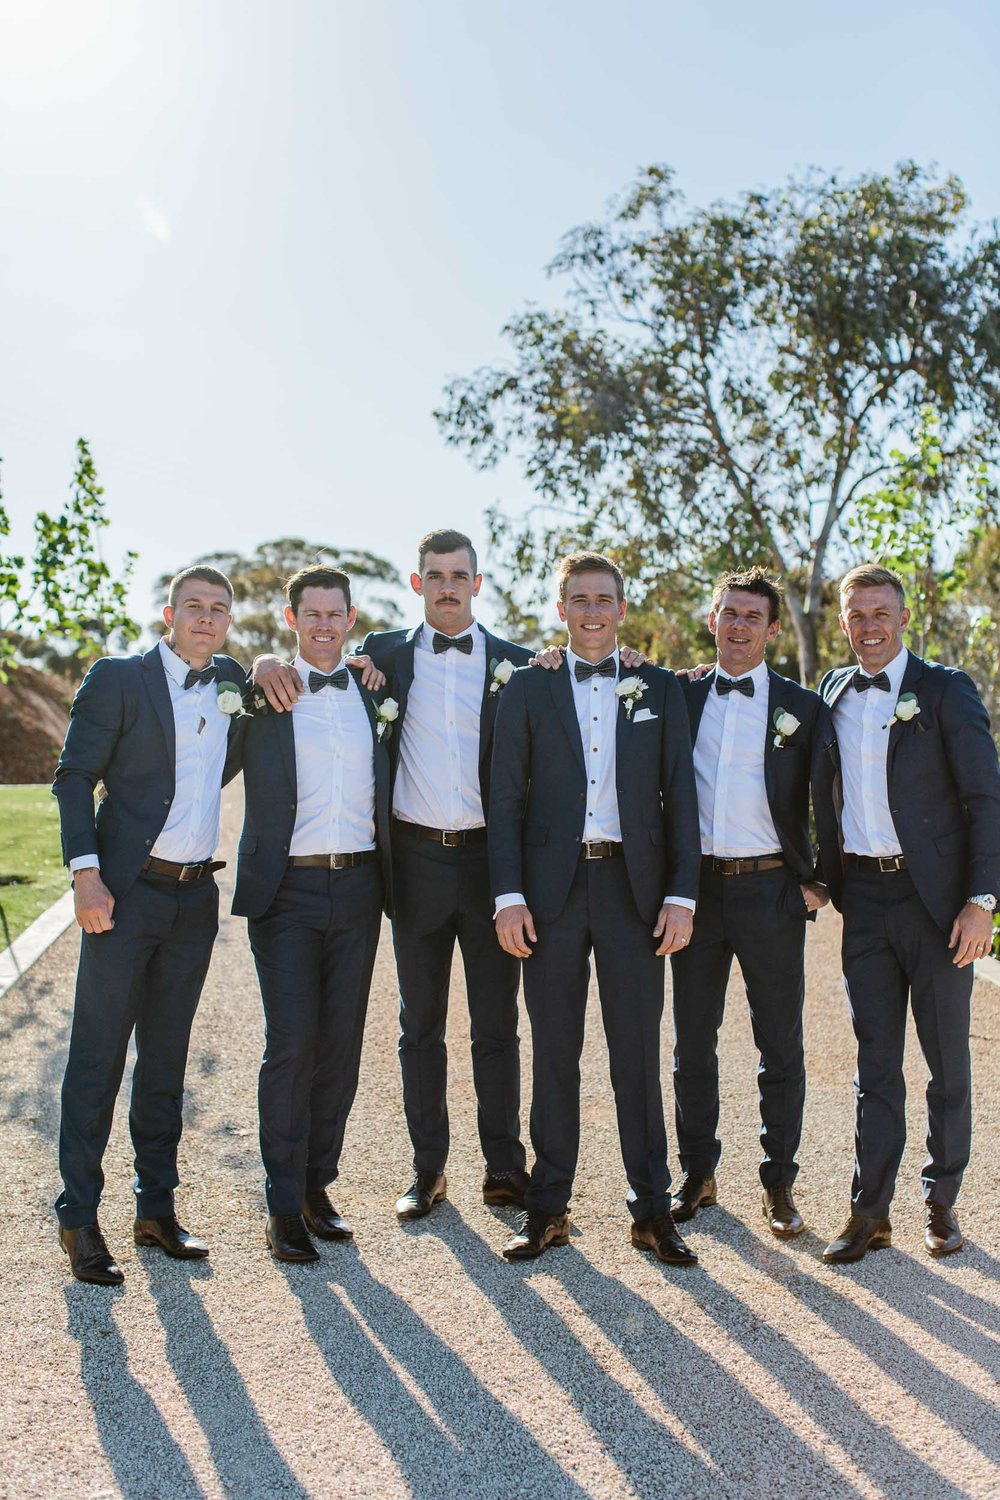 Kas-Richards-Destination-Wedding-Georgia-Young-Coutire-Briggins-Suit-South-Australian-Riverland-Wedding-601.jpg